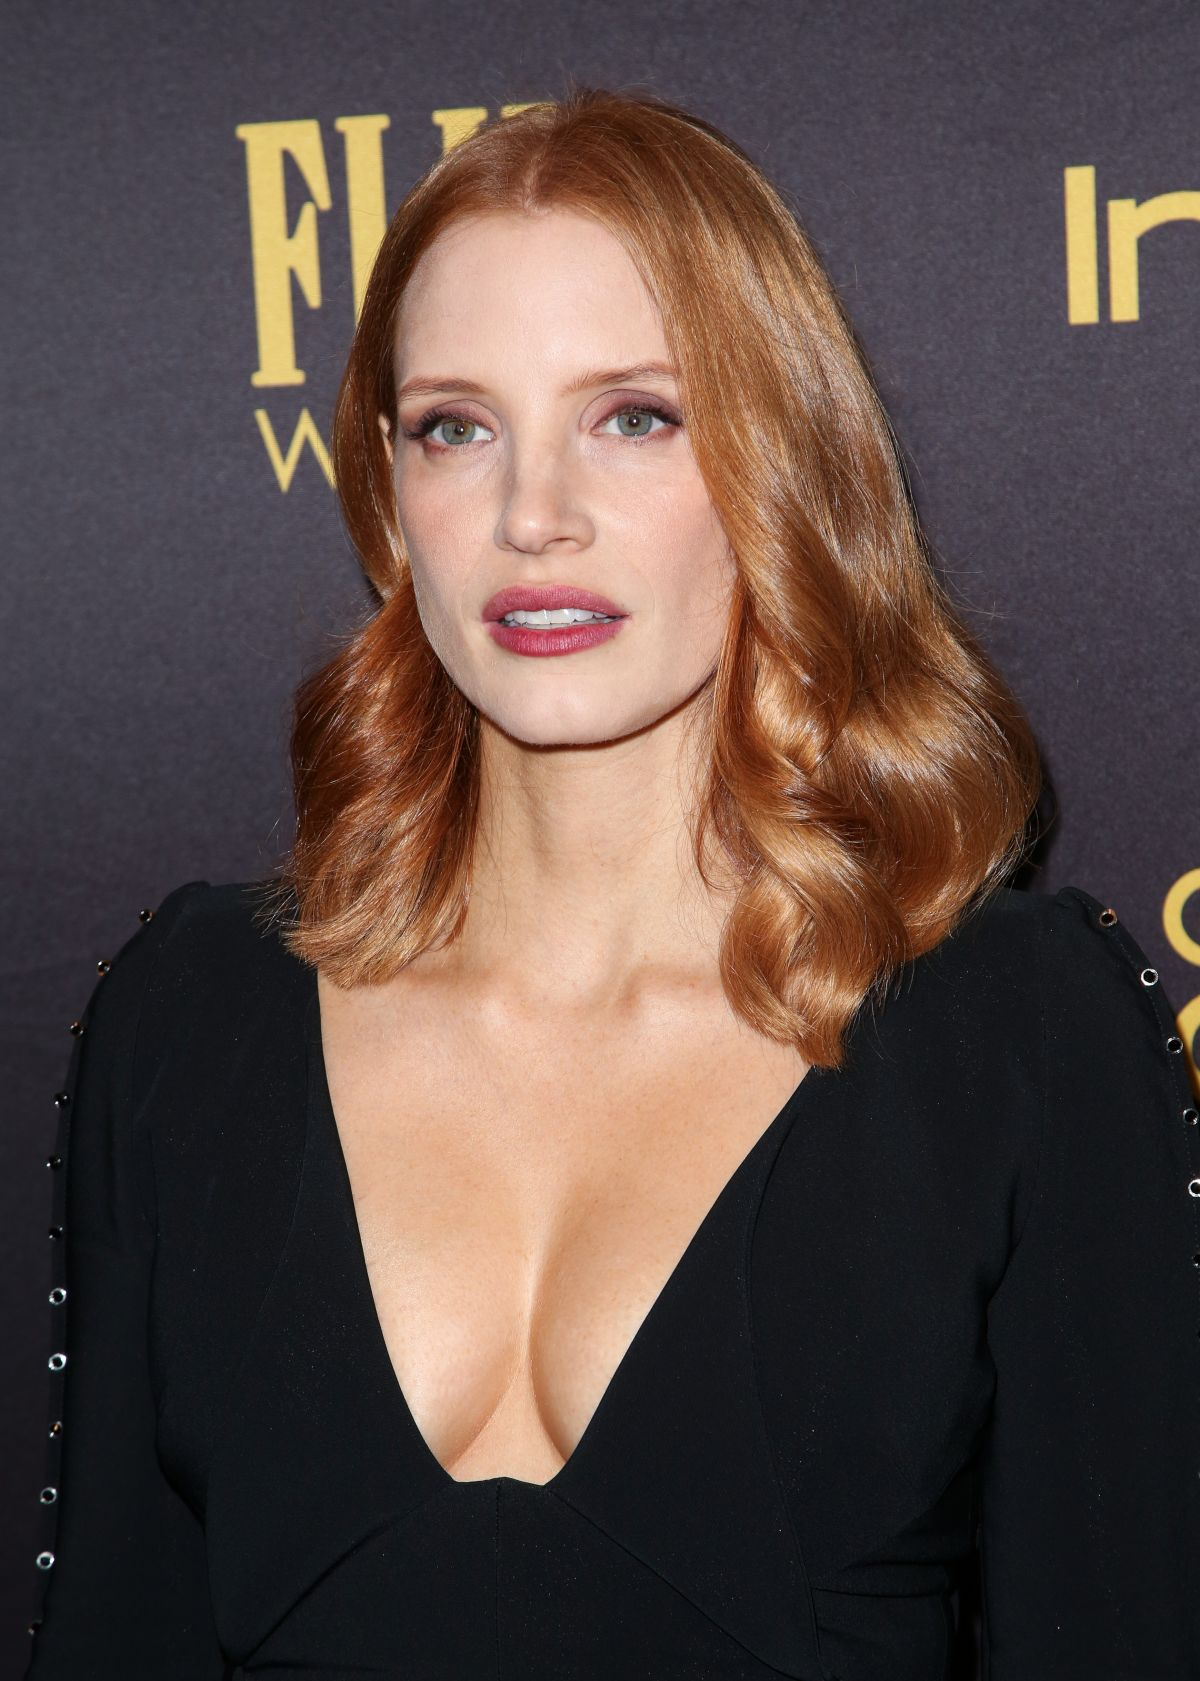 JESSICA CHASTAIN at HFPA & Instyle